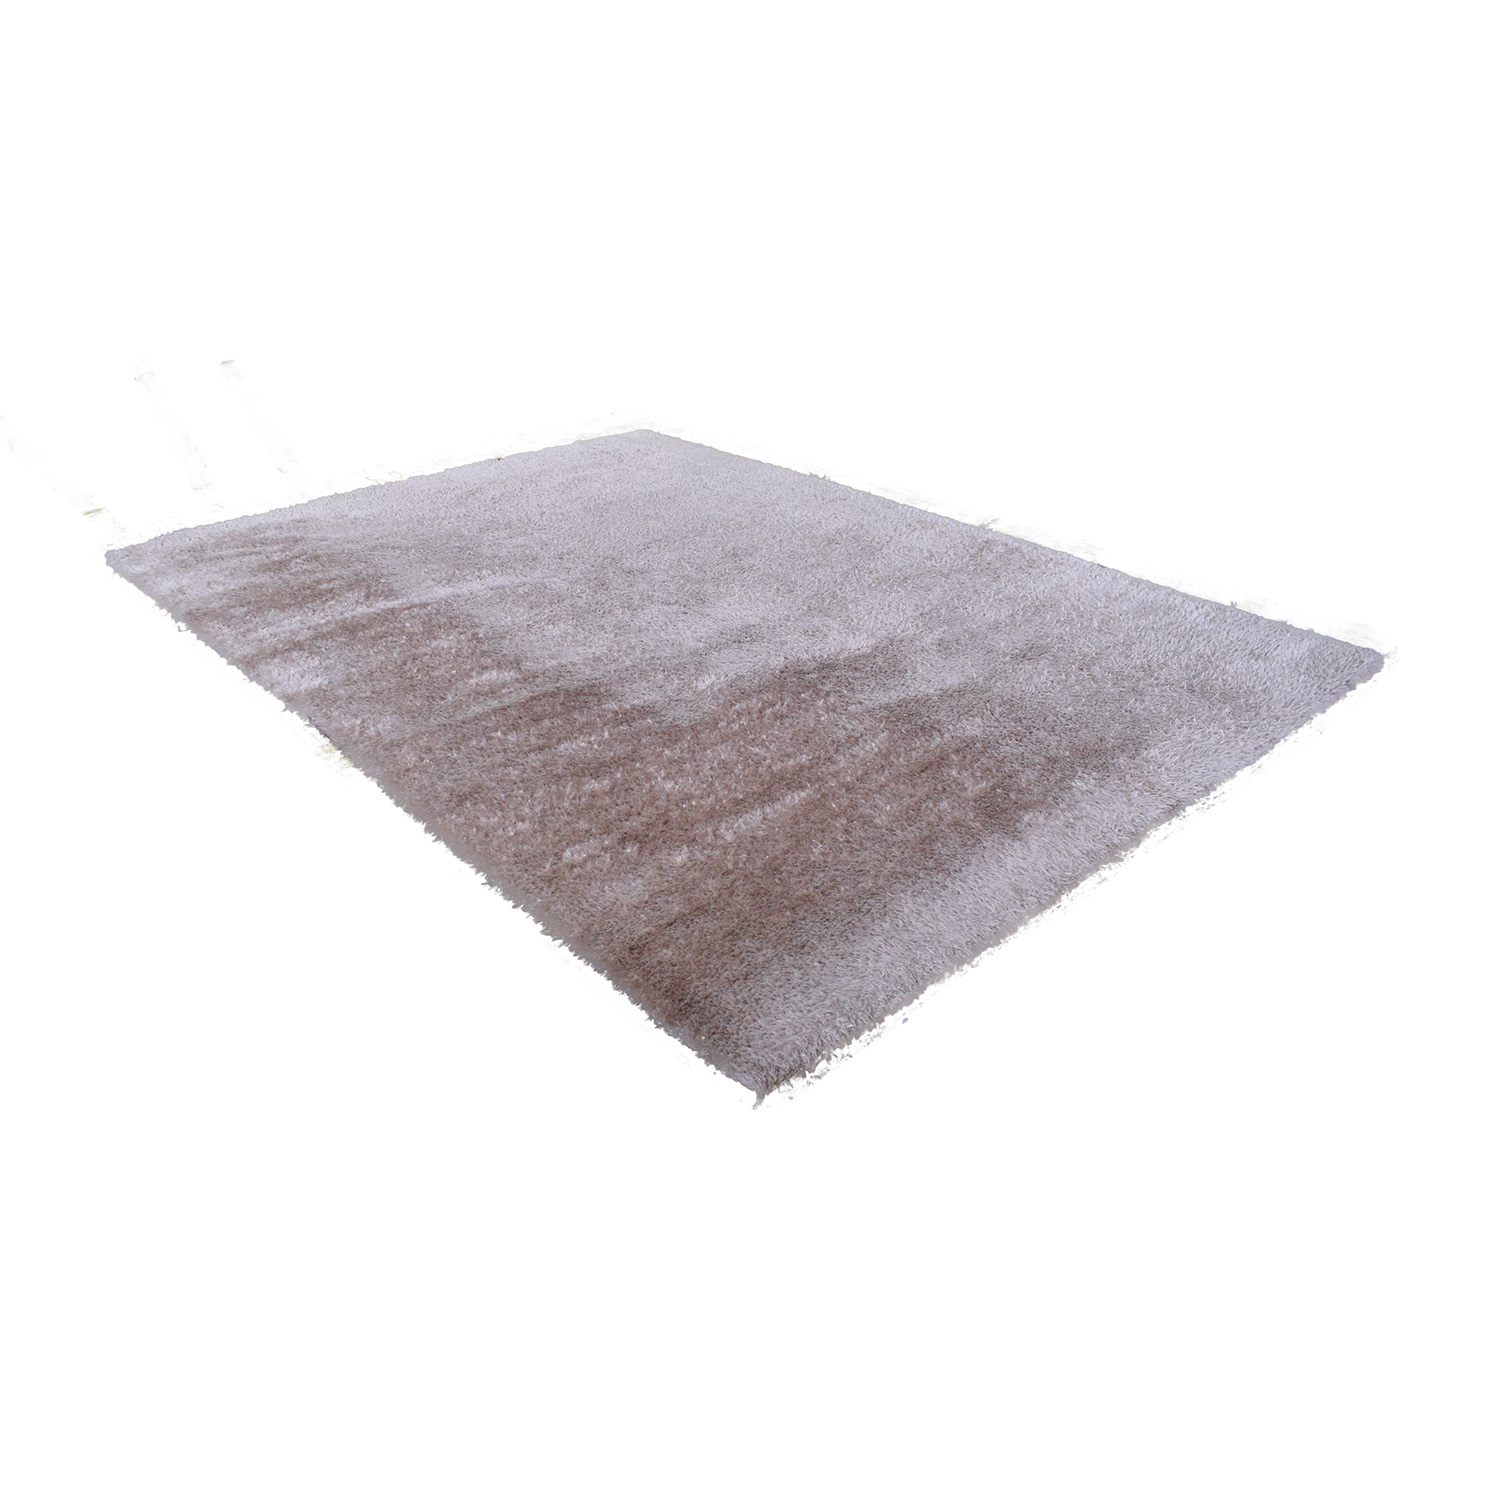 ABC Carpet & Home ABC Carpet & Home Stepevi Touch Me Short Pile Rug second hand